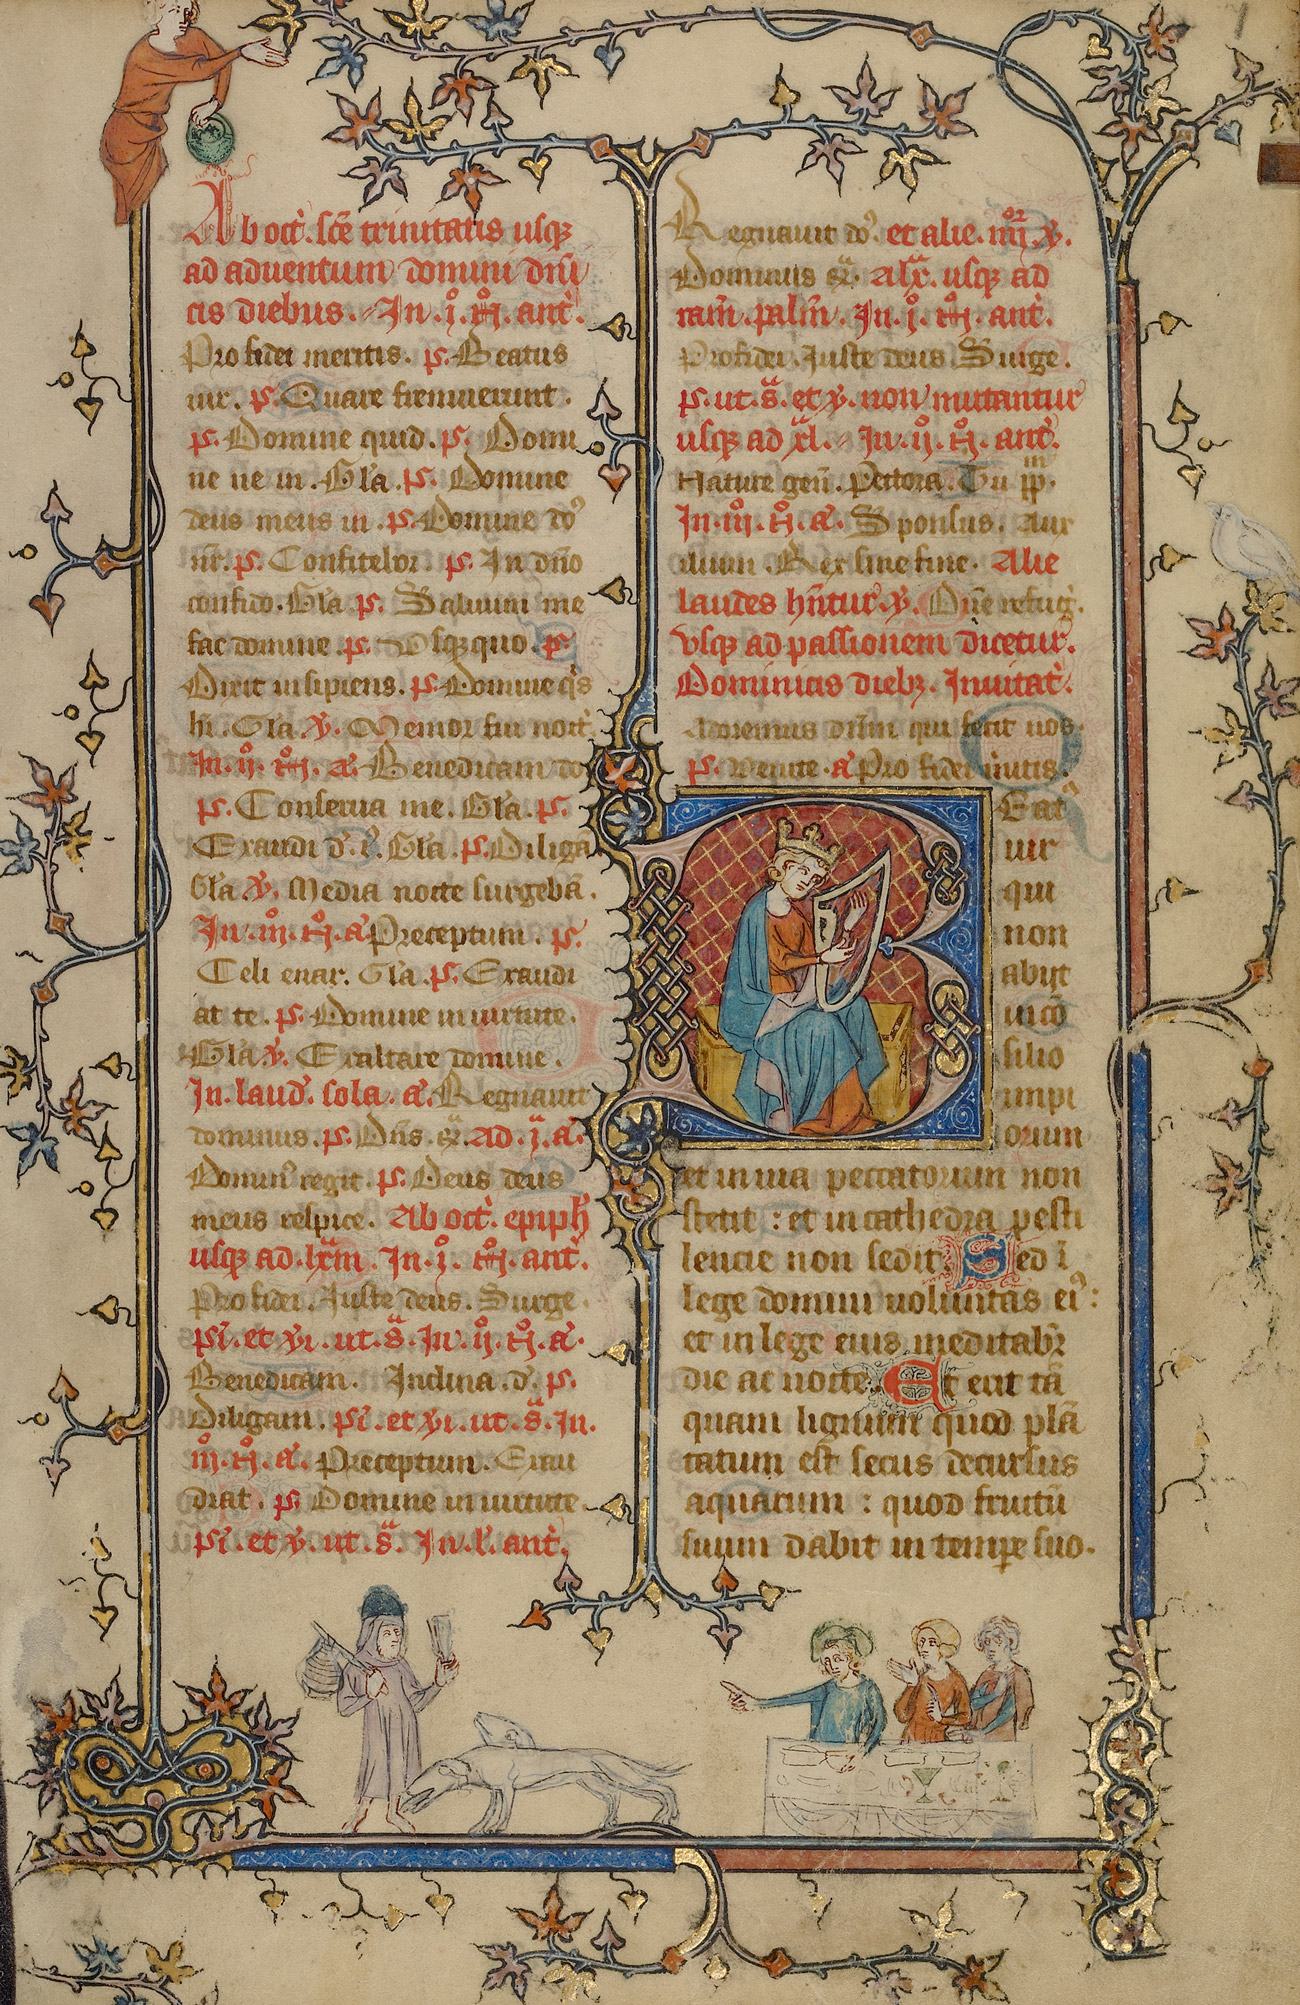 A page of an illuminated manuscript with a large illustrated B in the middle of the page and a scene below the text with a traveller, a dog and three men seated at a table.